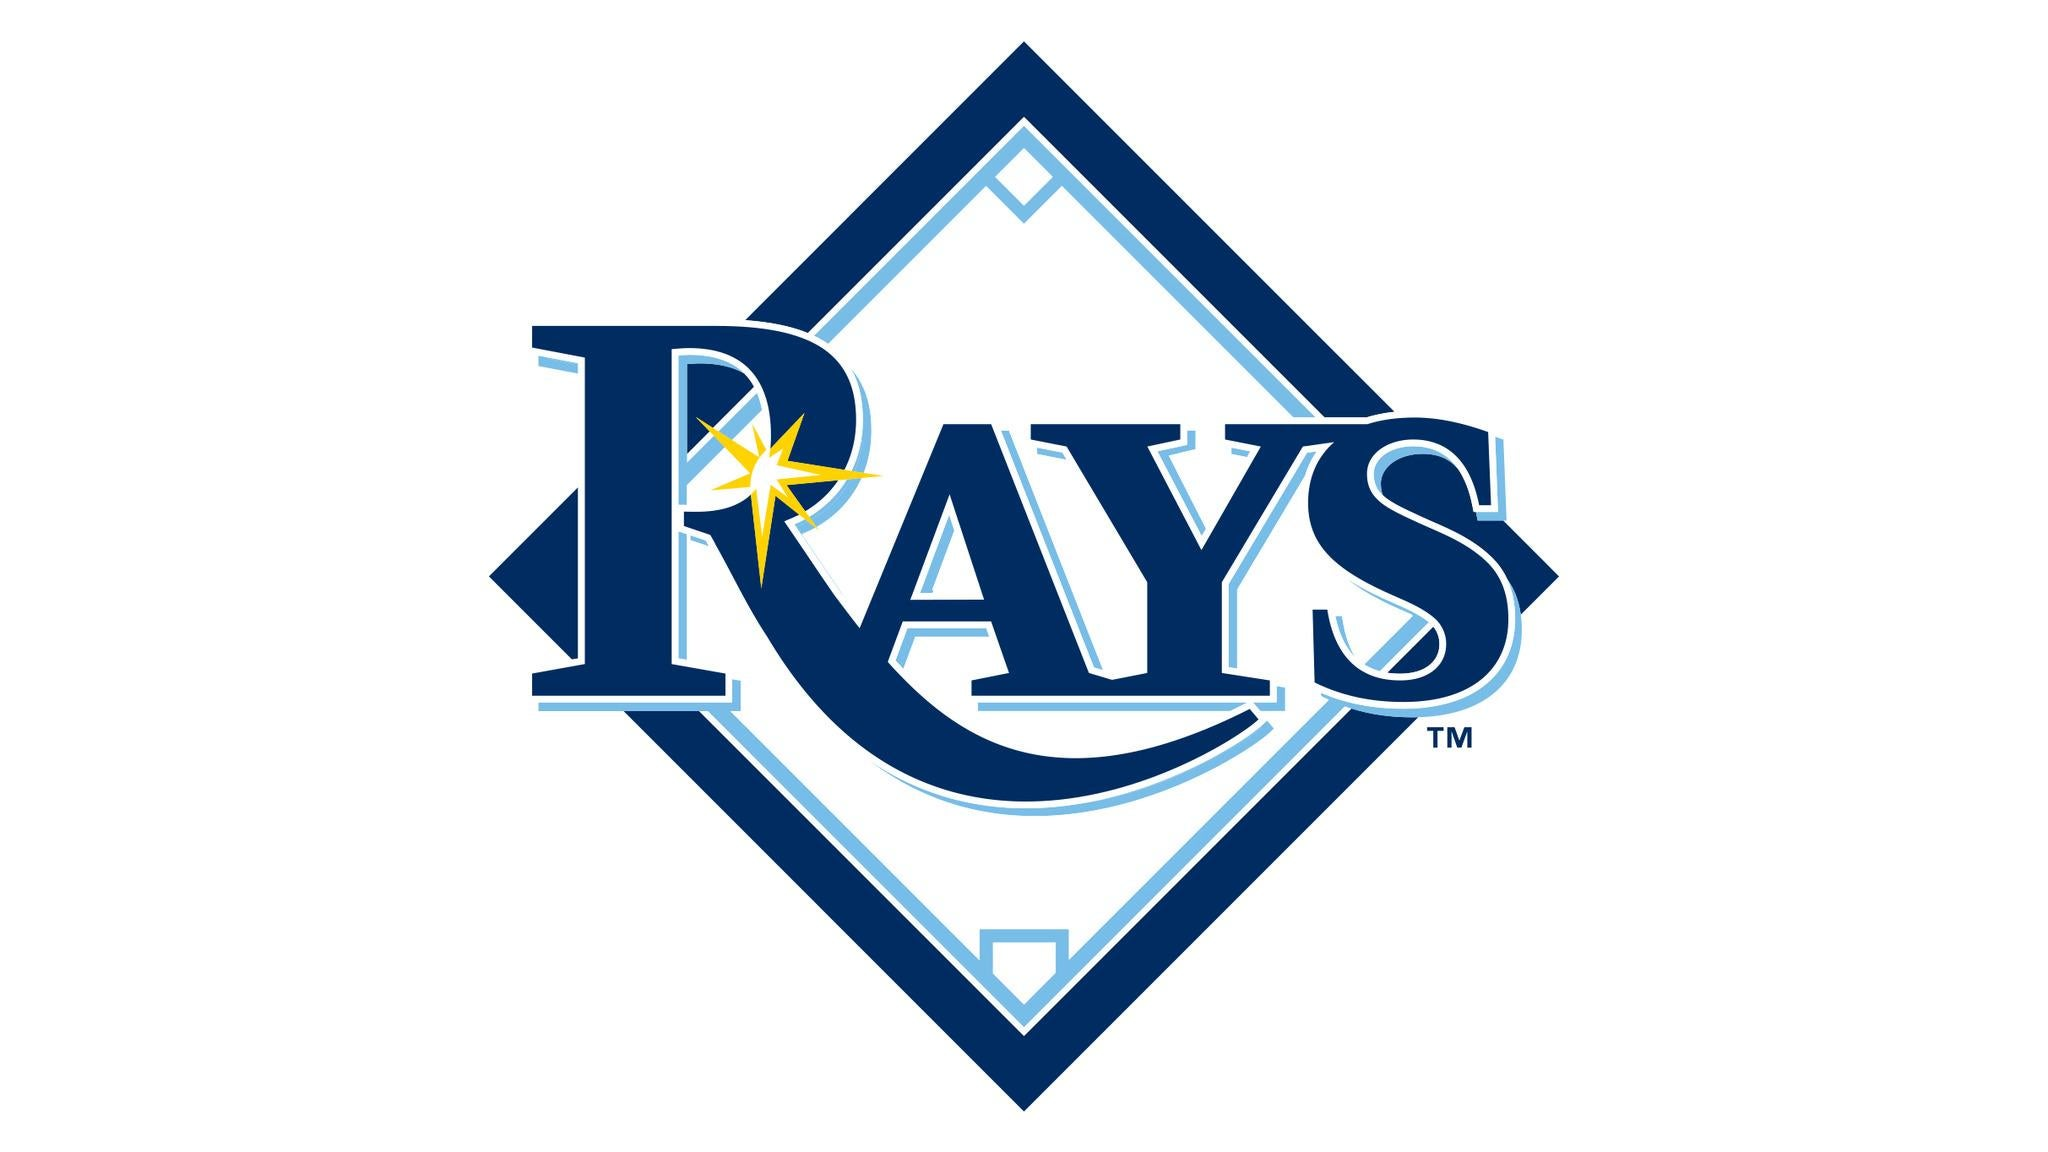 Tampa Bay Rays vs. Los Angeles Dodgers at Al Lang Stadium - St Petersburg, FL 33701